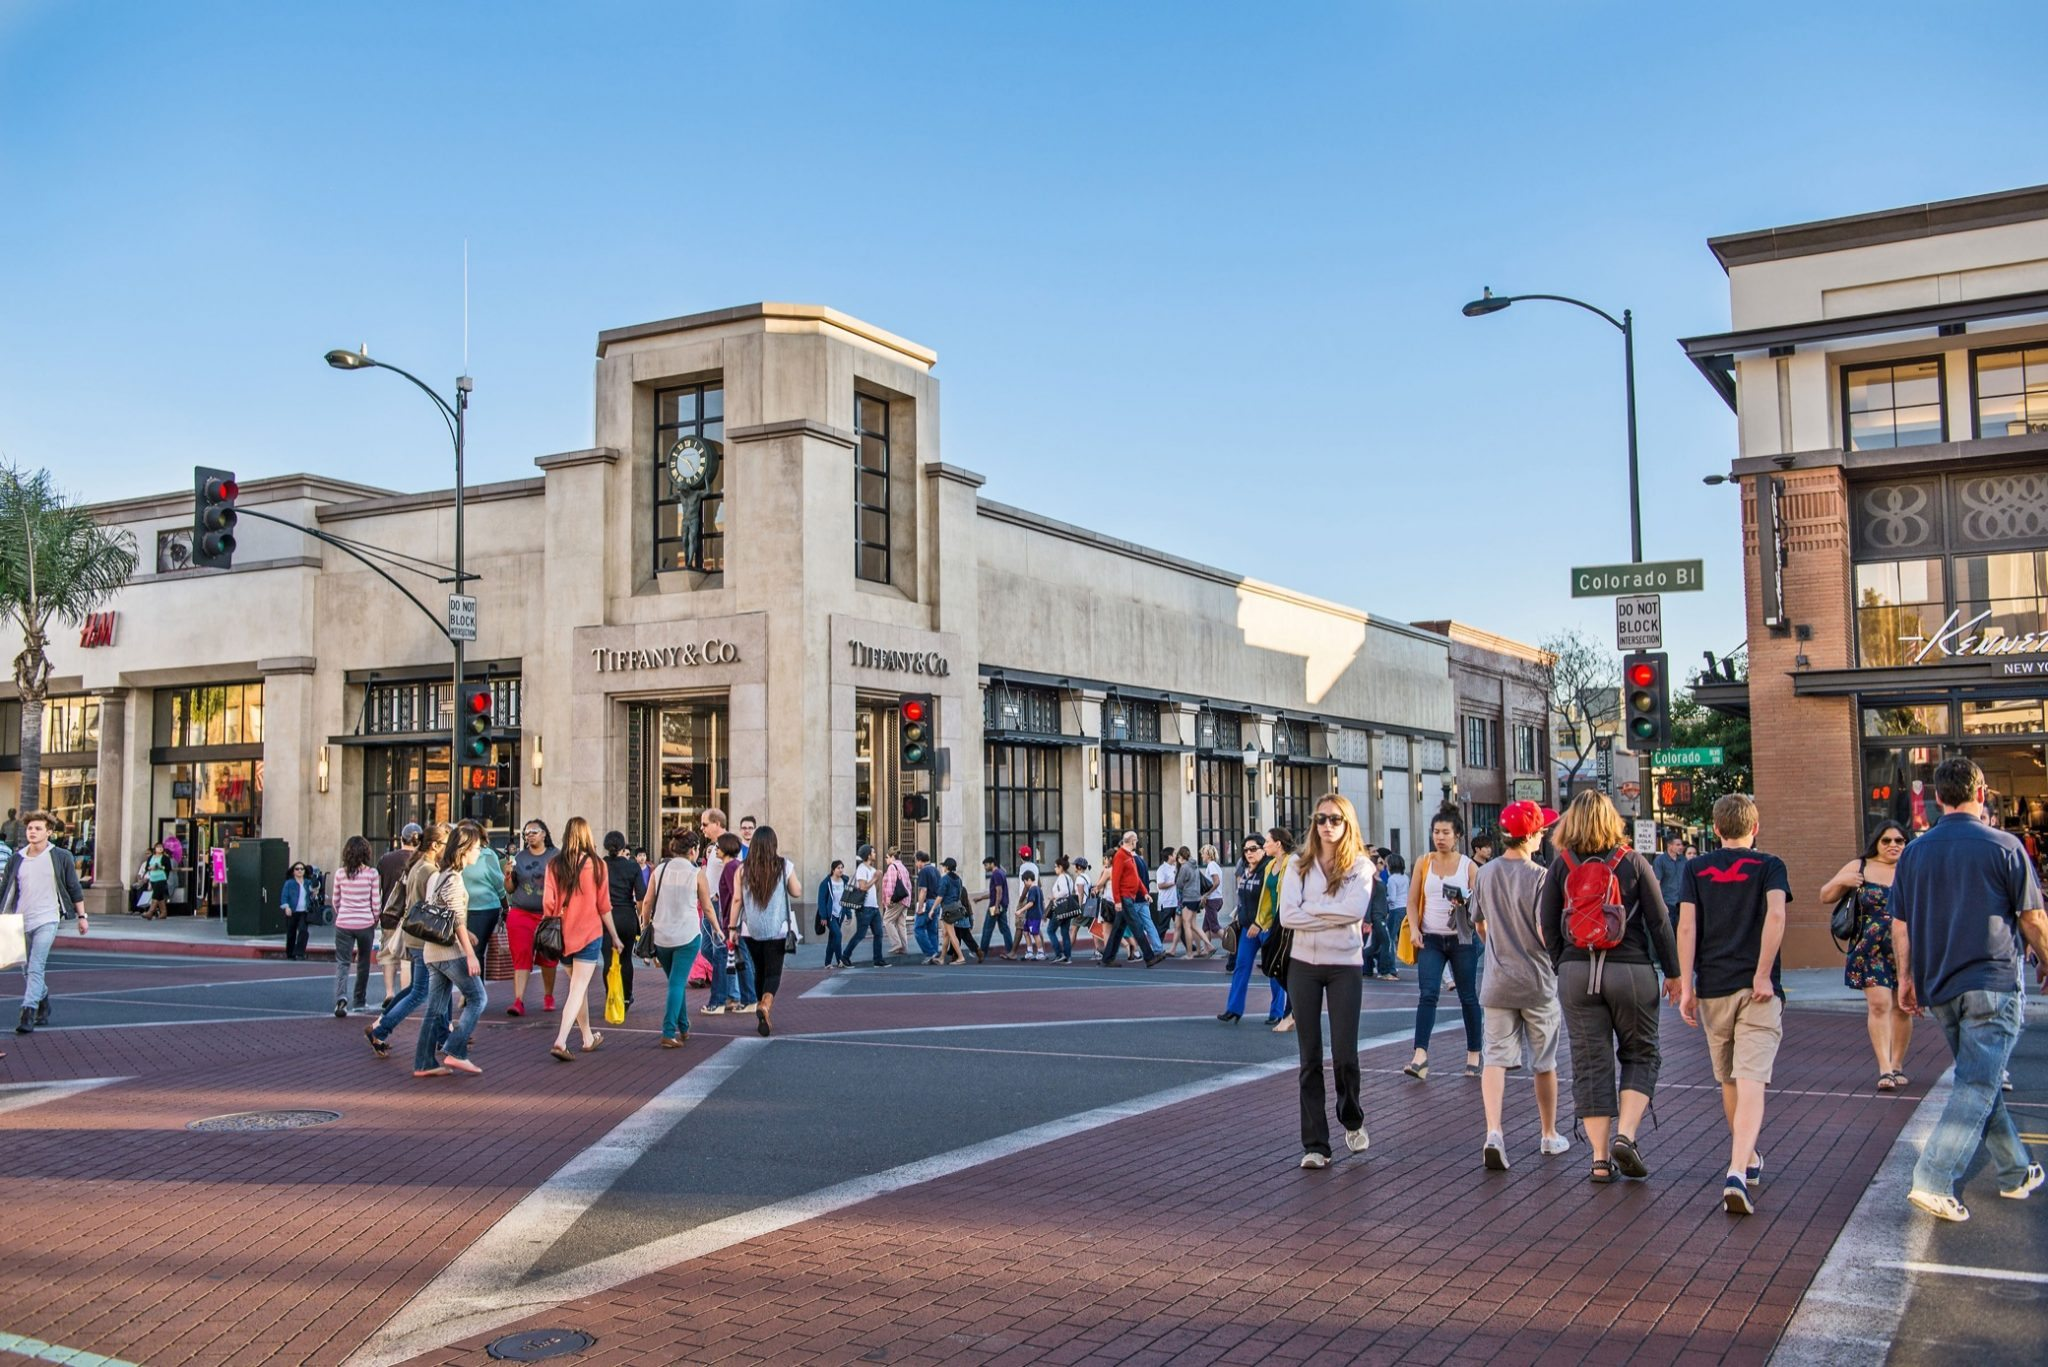 Best Pasadena Shopping: See reviews and photos of shops, malls & outlets in Pasadena, California on TripAdvisor.